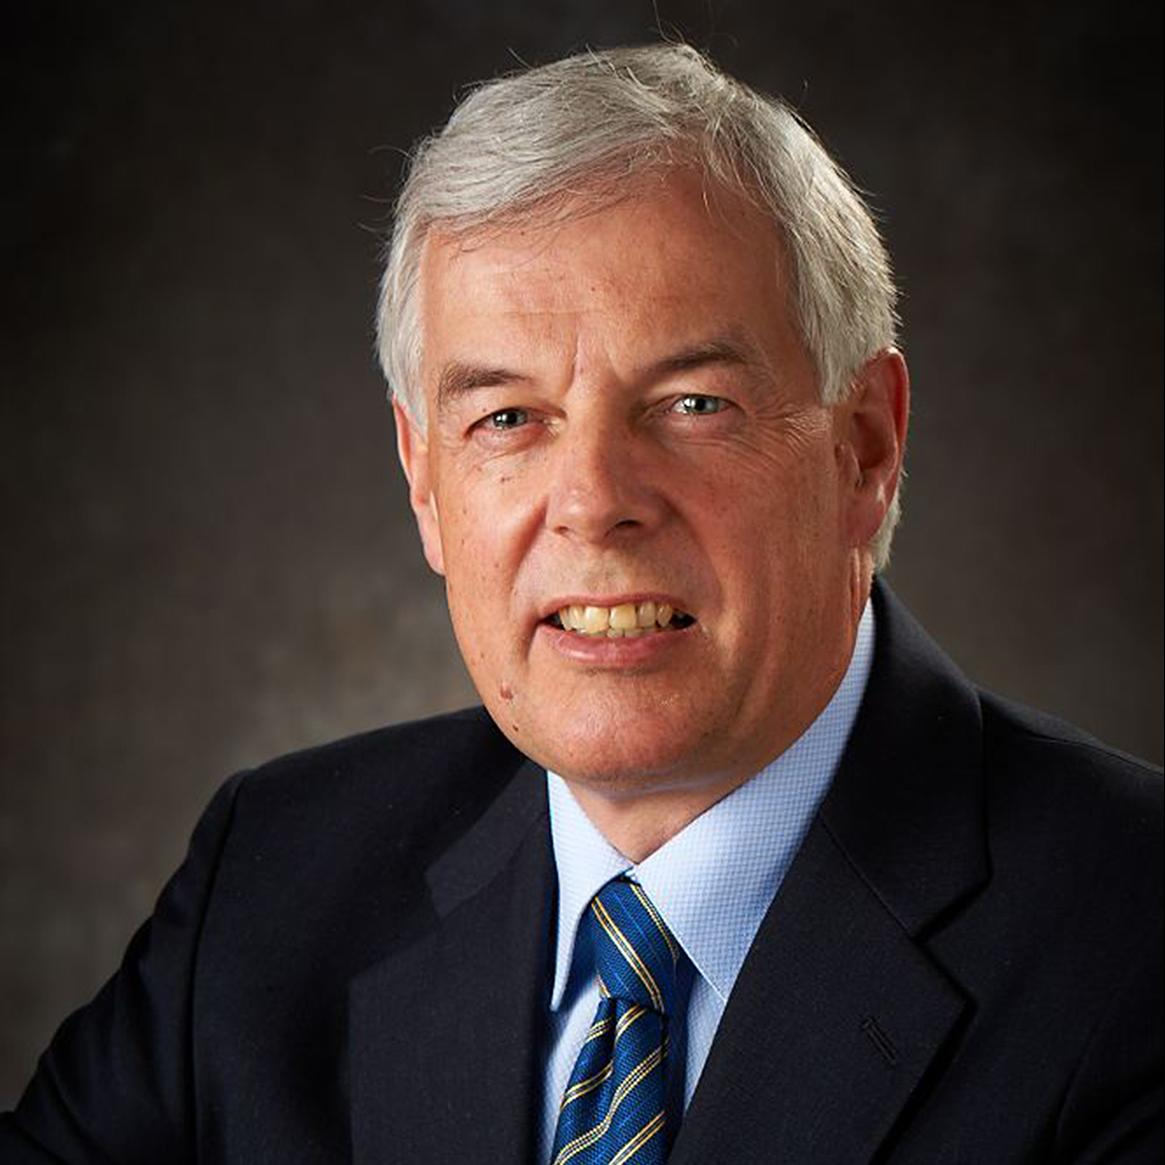 Man with gray hair wearing a dark blazer, light blue shirt, and a blue-striped tie